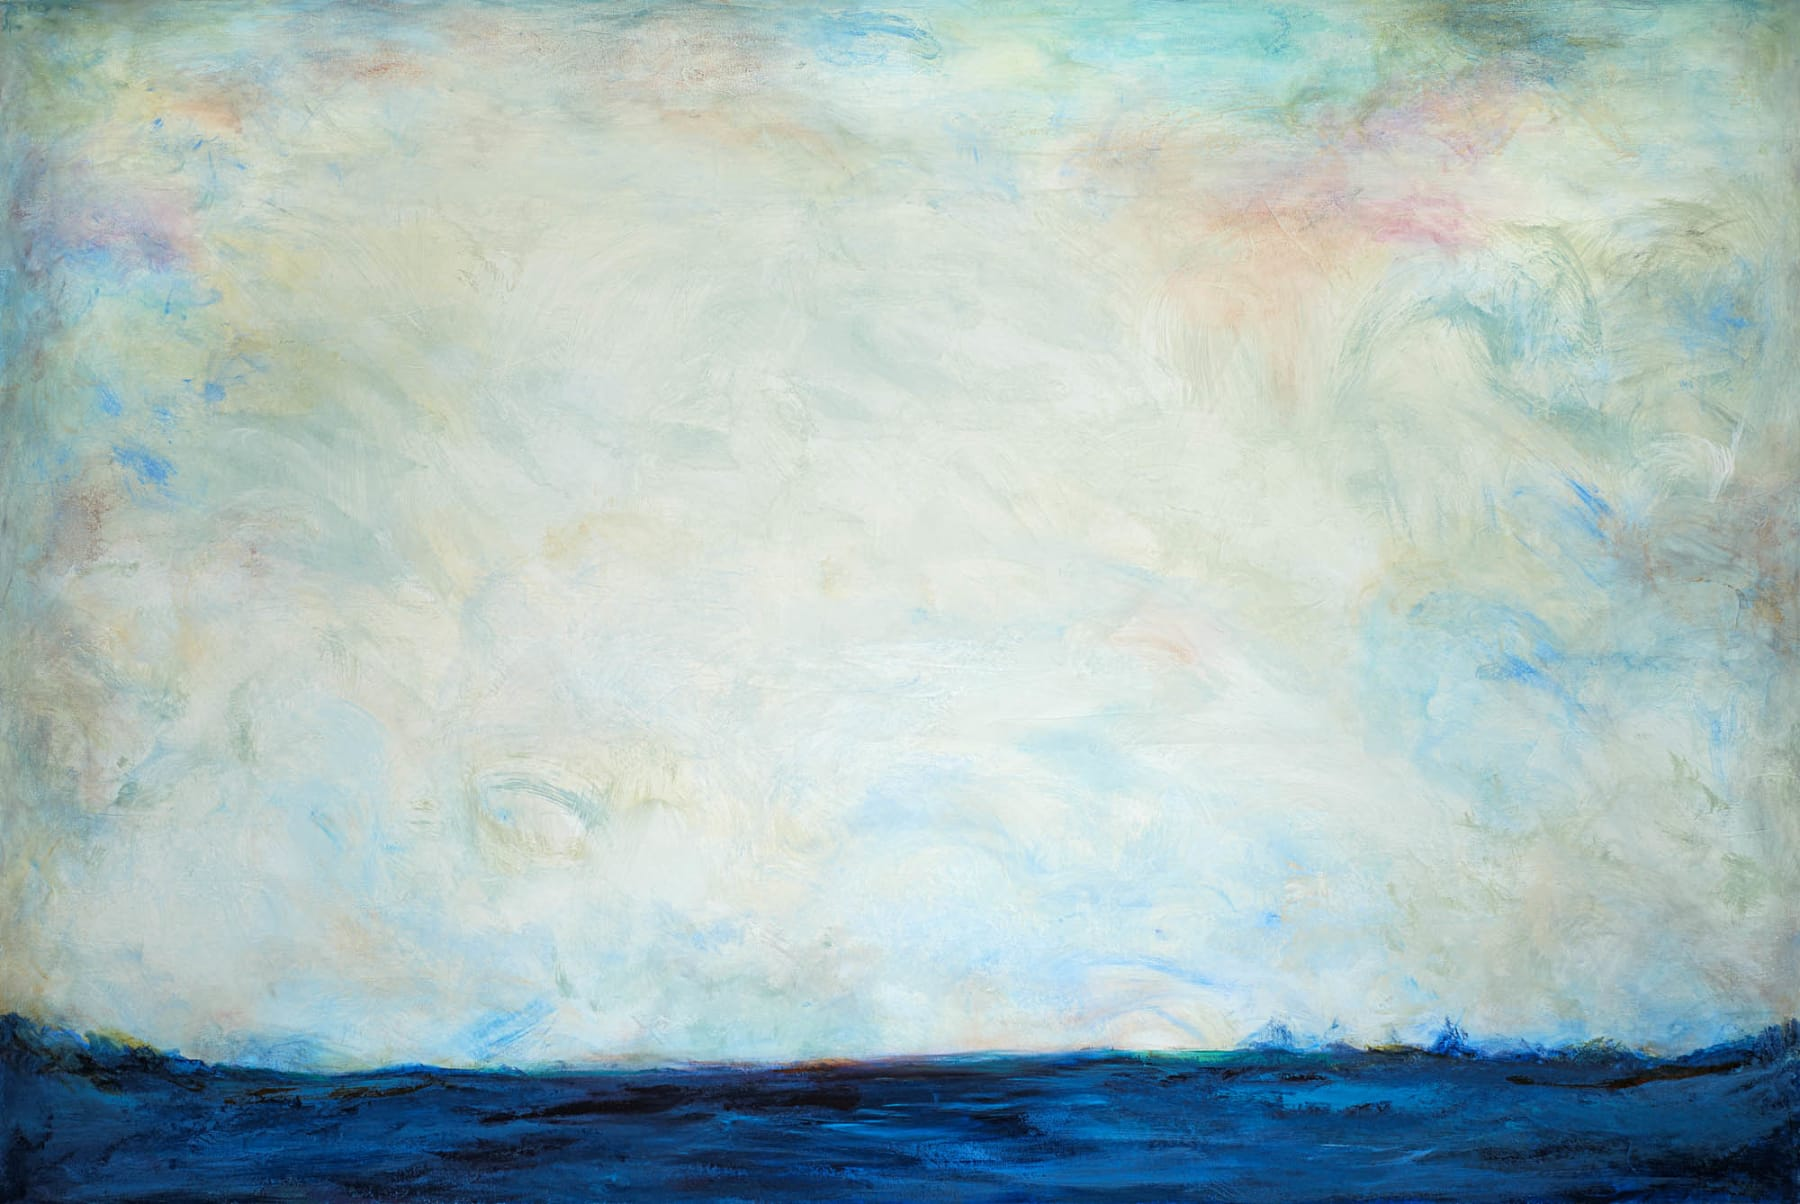 Patricia Qualls, Seascape, 2019